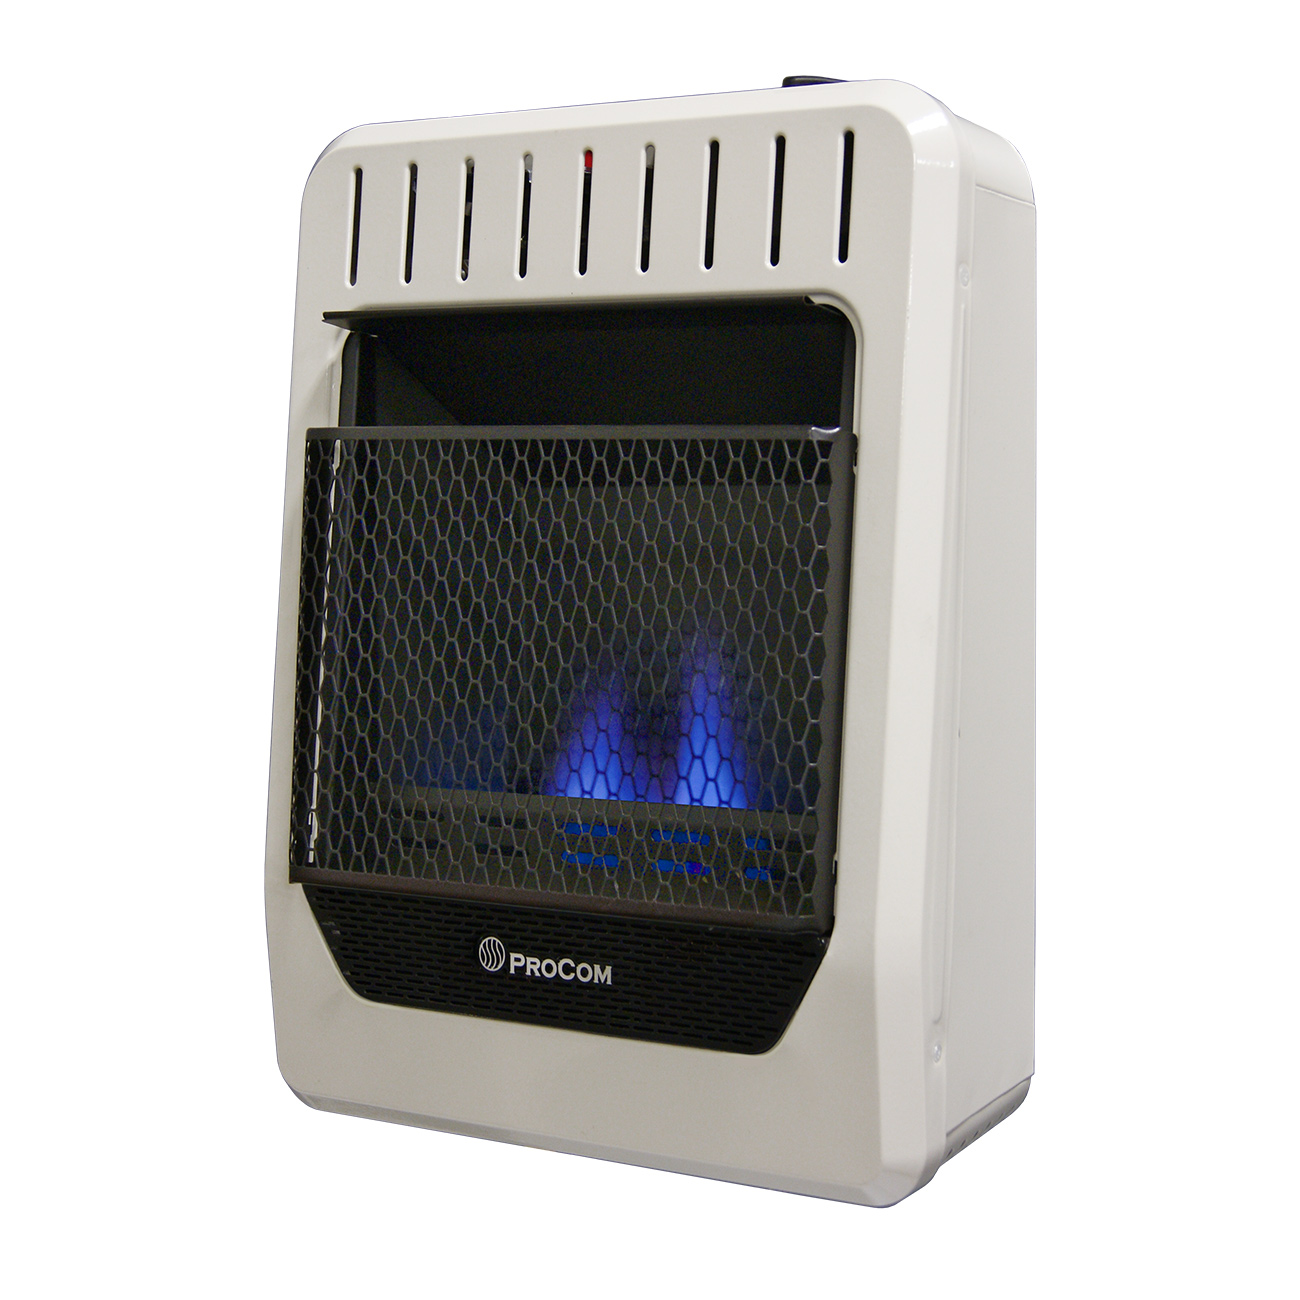 Ventless Natural Gas Blue Flame Manual Control Wall Heater